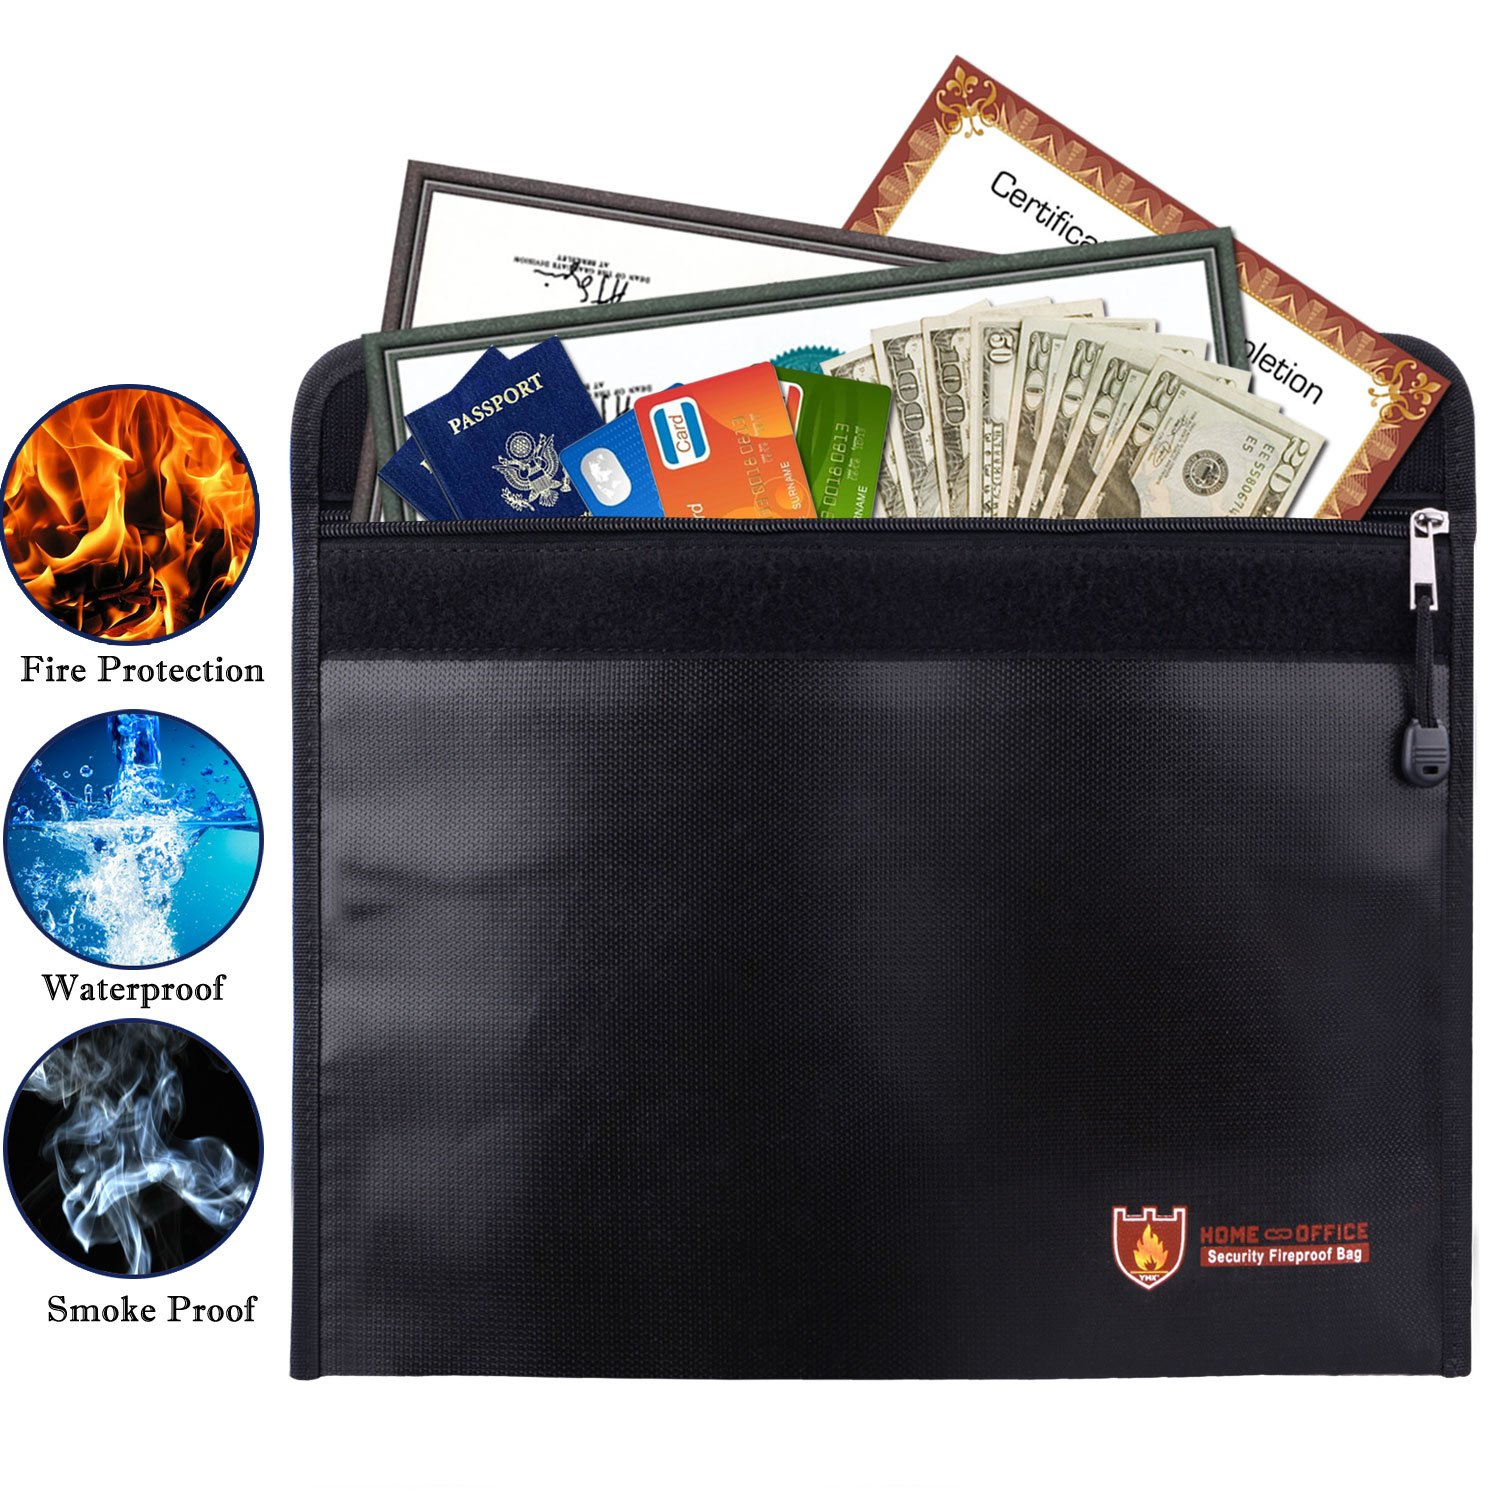 Fireproof Document Bag,Silicone Coated Fire Resistant/Water Proof Money Bag Fireproof Safe Storage,Protect Your Valuables,Documents,Money,Jewelry, Zipper Closure for Maximum Protection,15''x11''